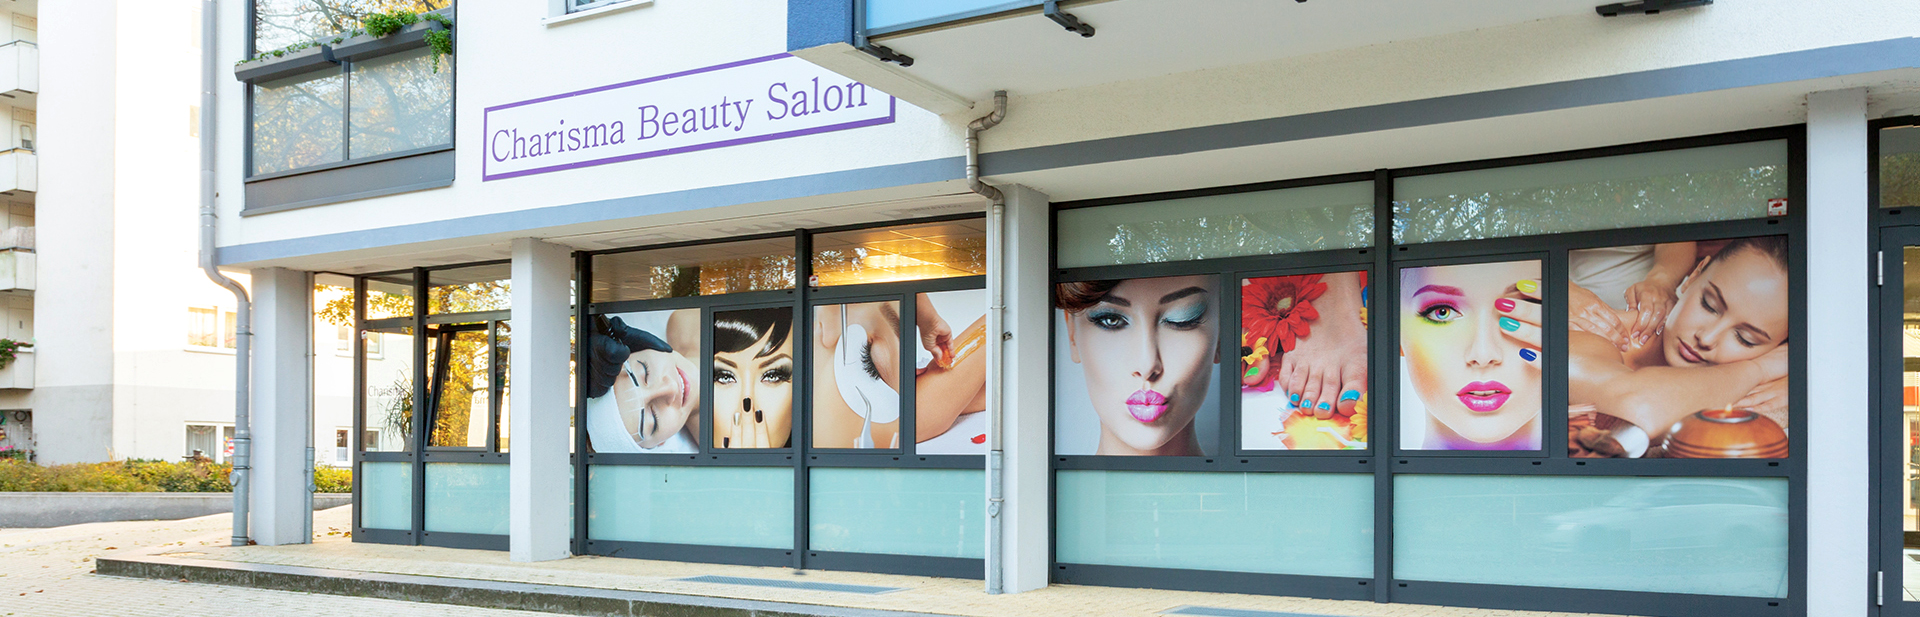 Charisma Beauty Salon - Maschen